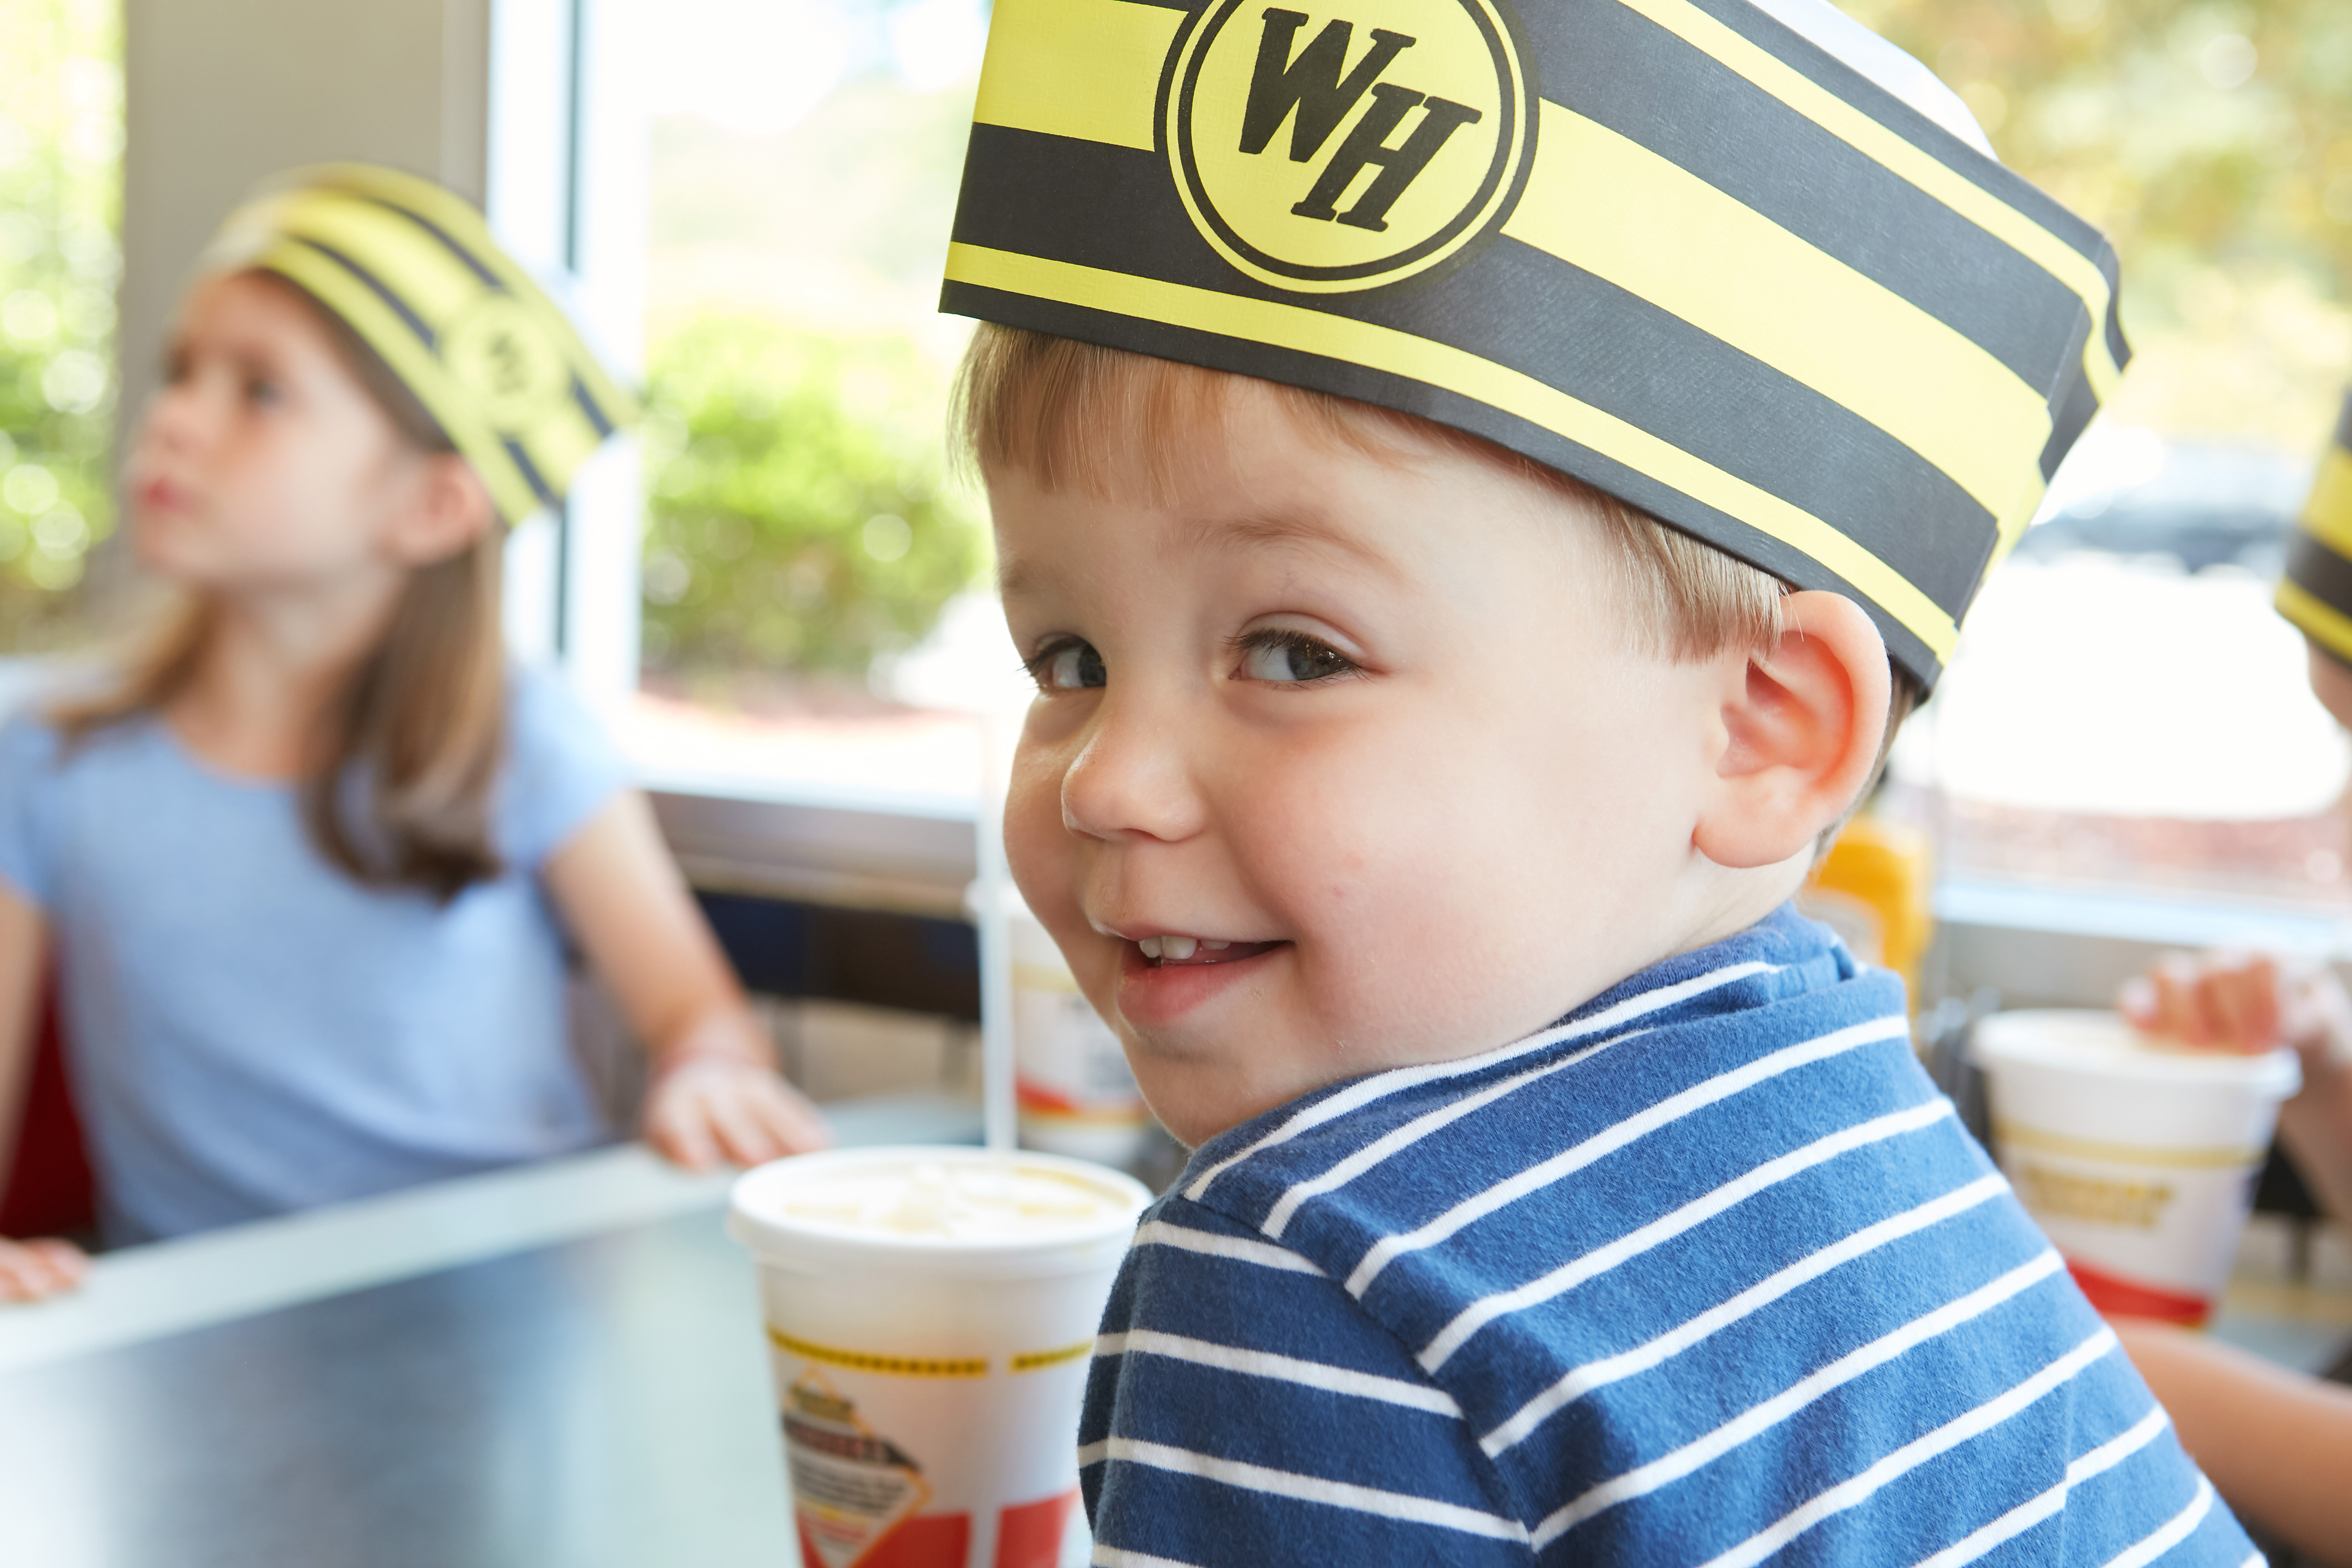 Small child wearing a waffle house hat